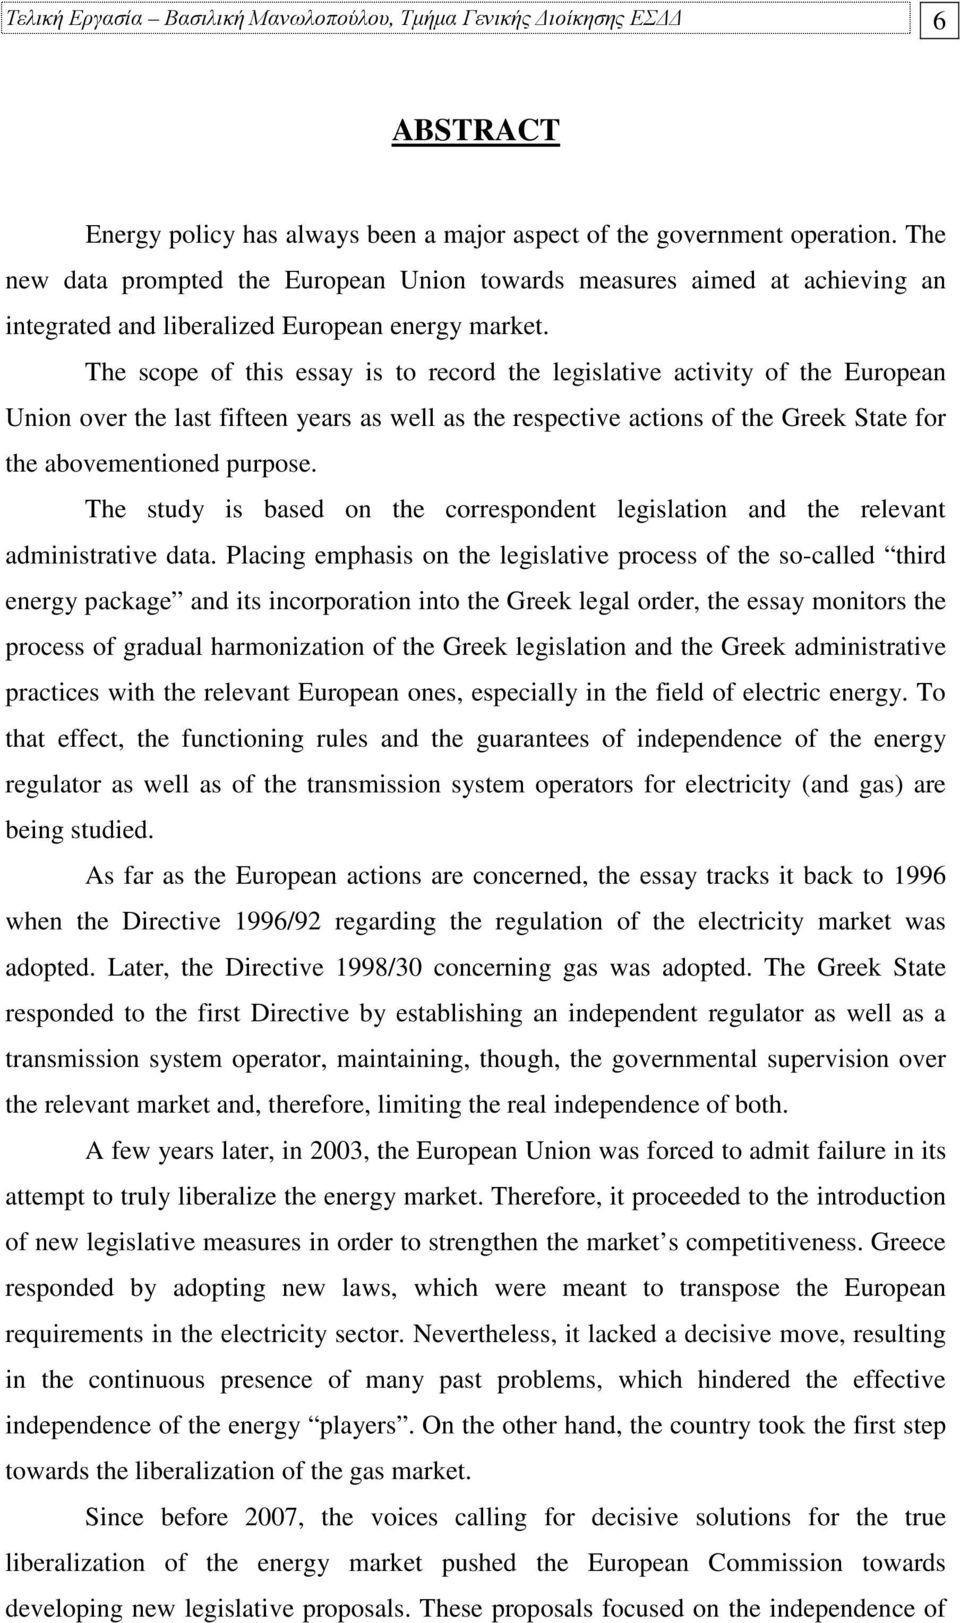 The scope of this essay is to record the legislative activity of the European Union over the last fifteen years as well as the respective actions of the Greek State for the abovementioned purpose.